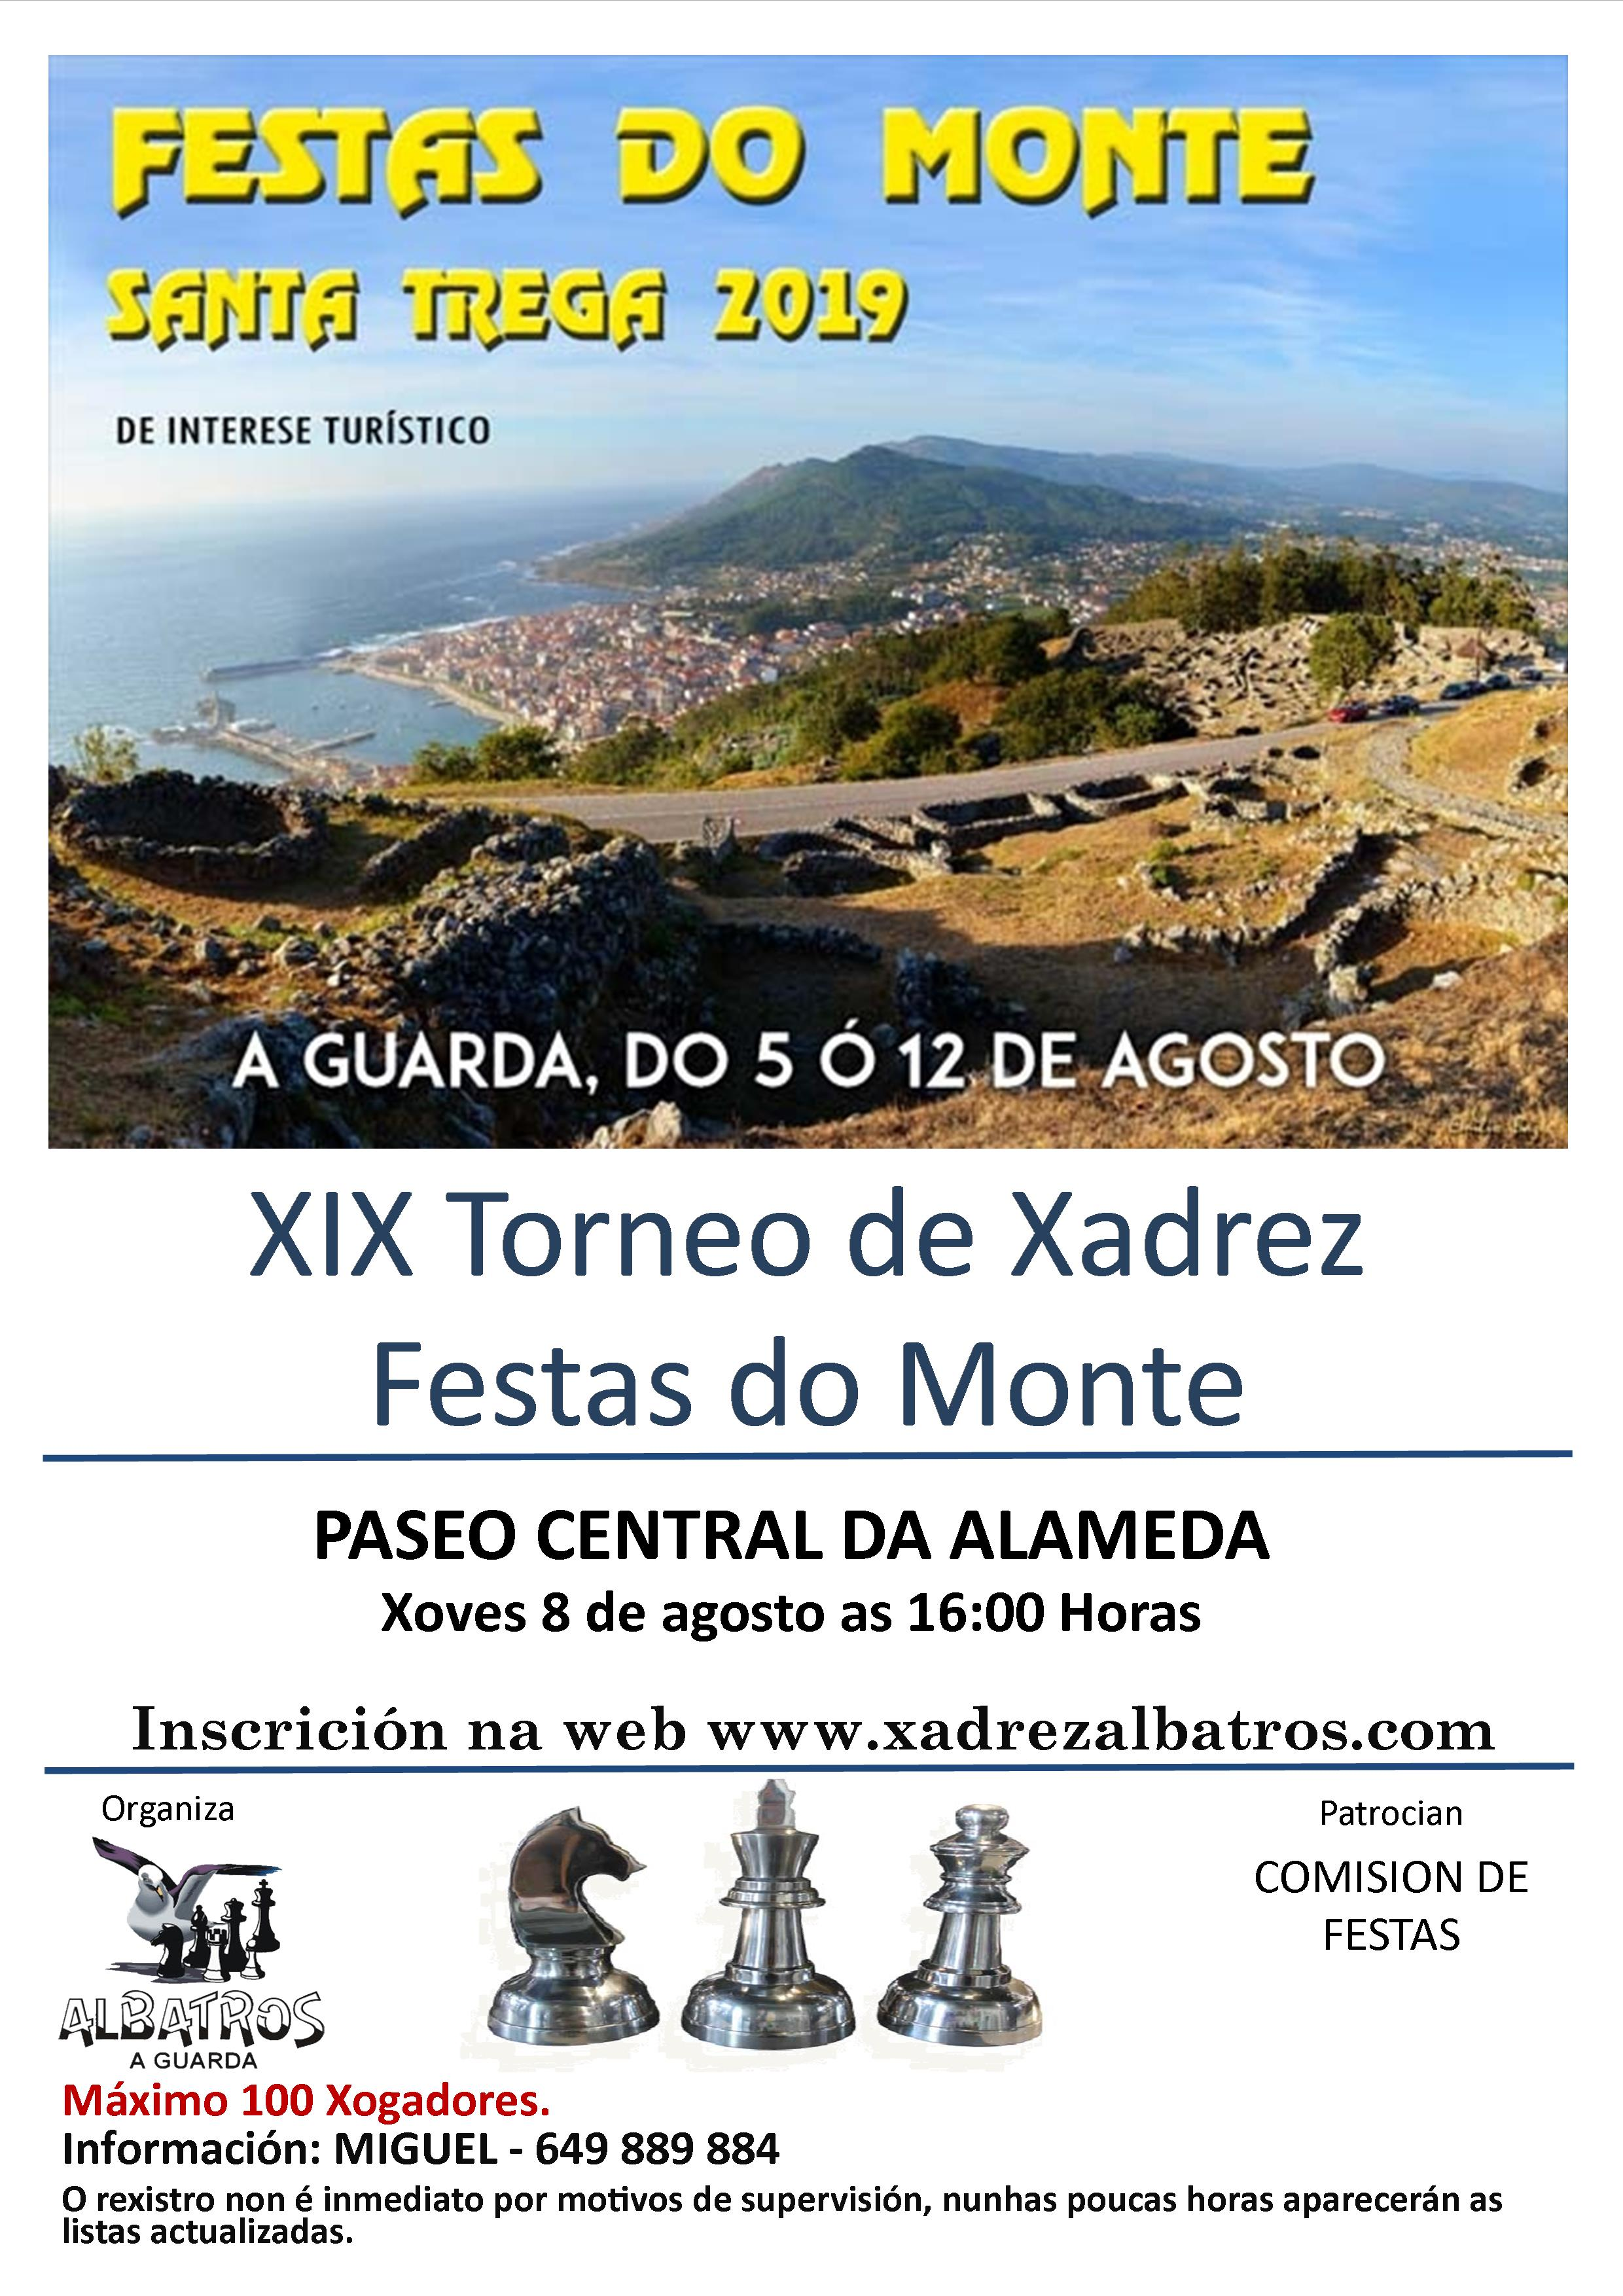 Cartel Festas do Monte 2019